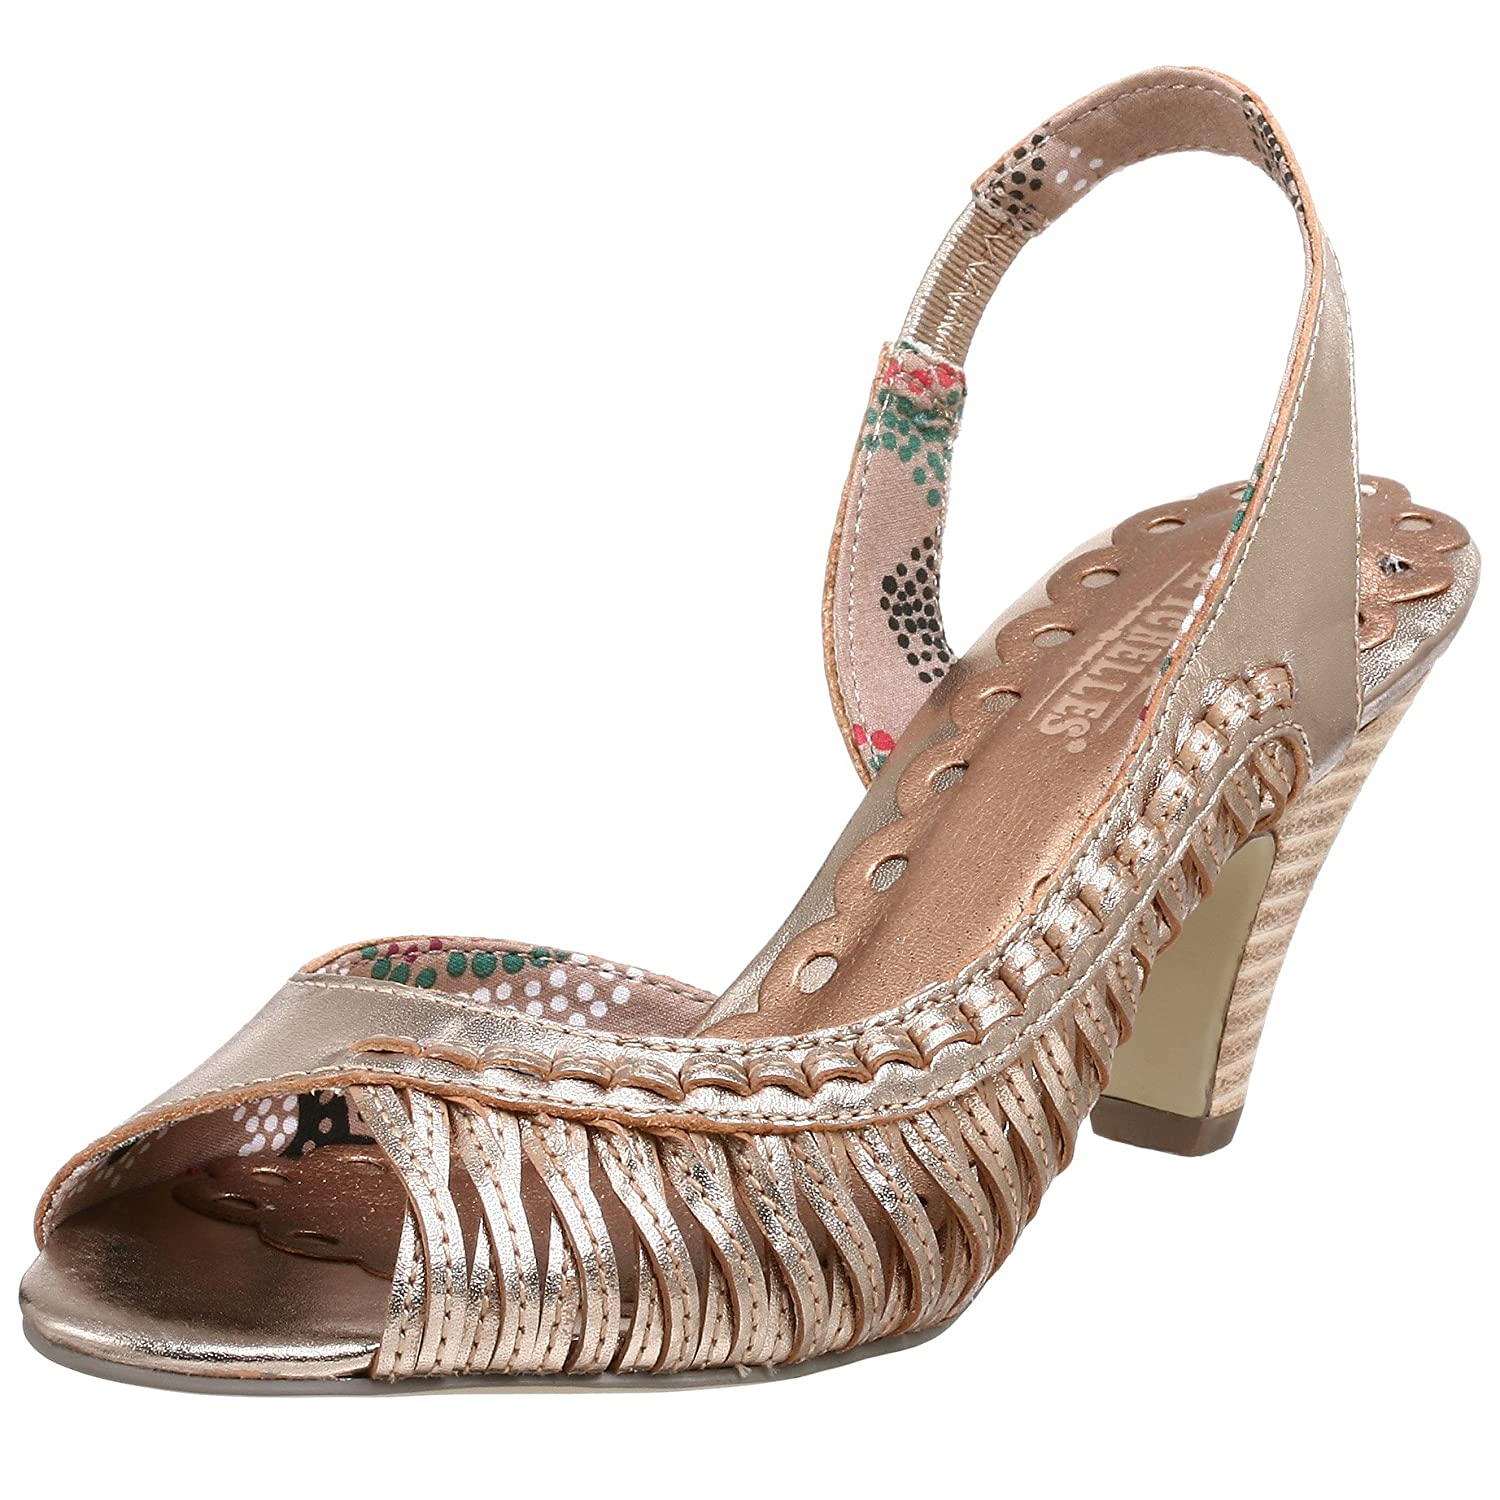 Seychelles Shanti Slingback - Free Overnight Shipping & Return Shipping: Endless.com